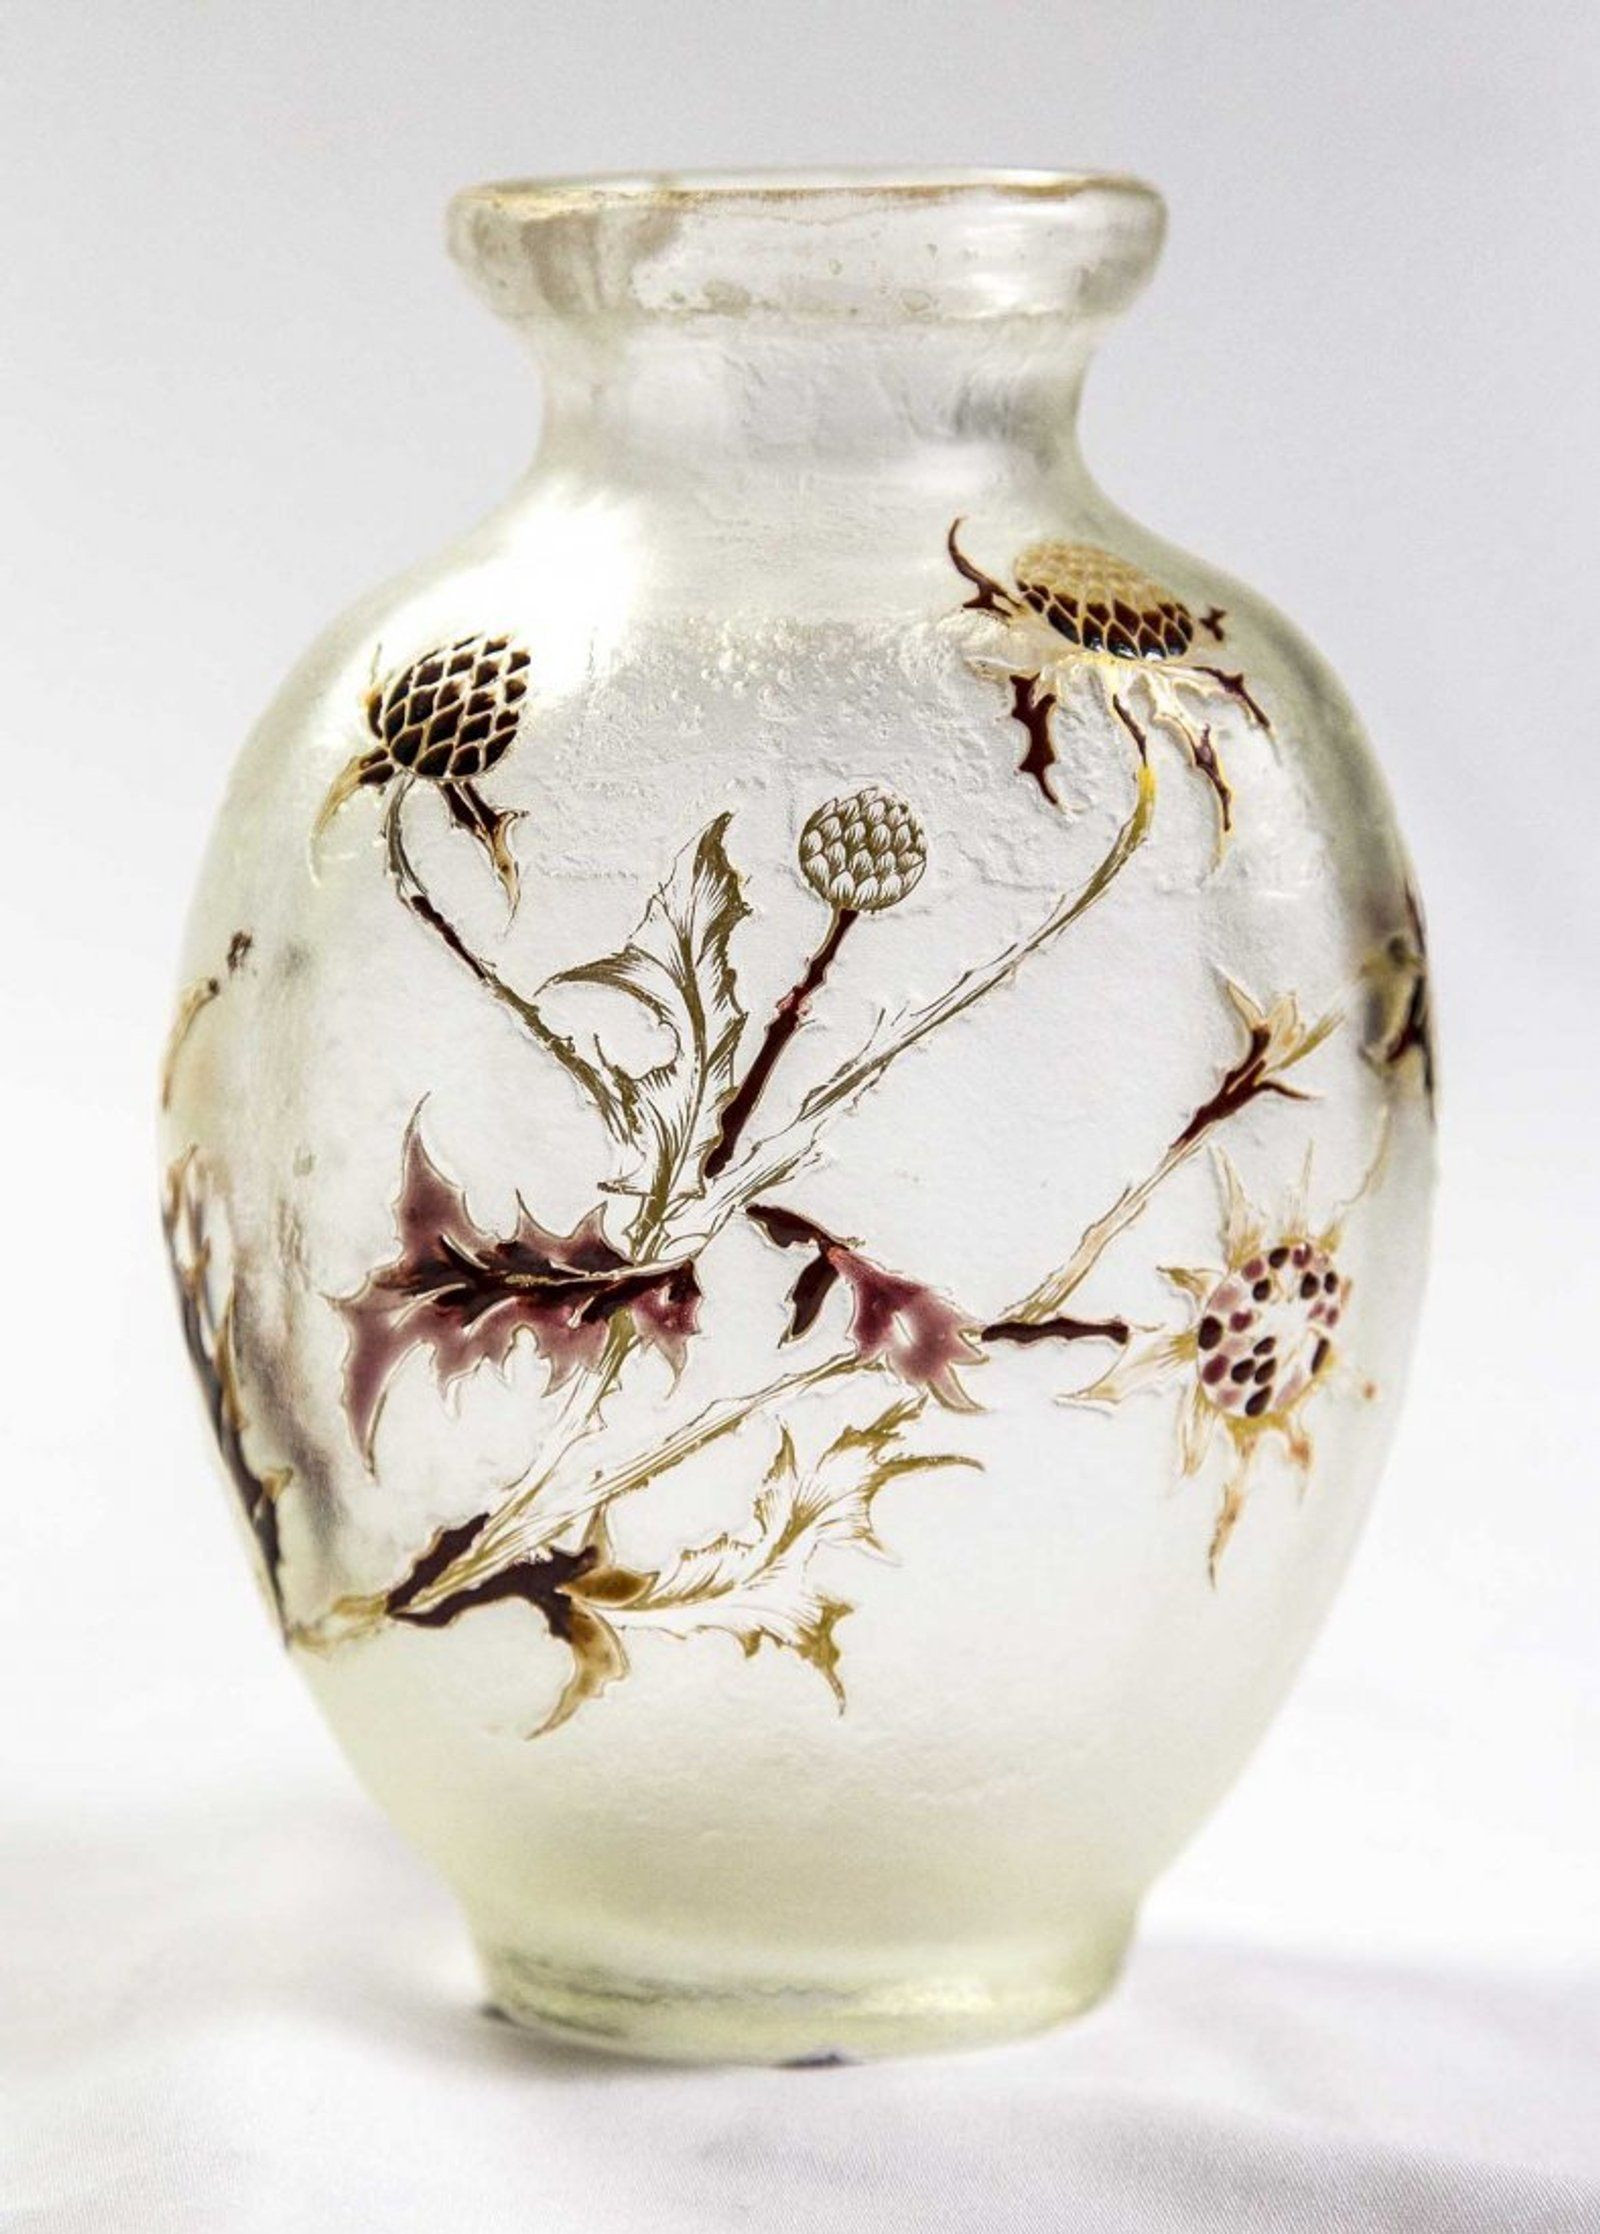 Cameo Glass Vase Of Emile Galla‰ Tri Color Cameo Glass Landscape Vase On Emile Galle Inside Emile Galla‰ Tri Color Cameo Glass Landscape Vase 6